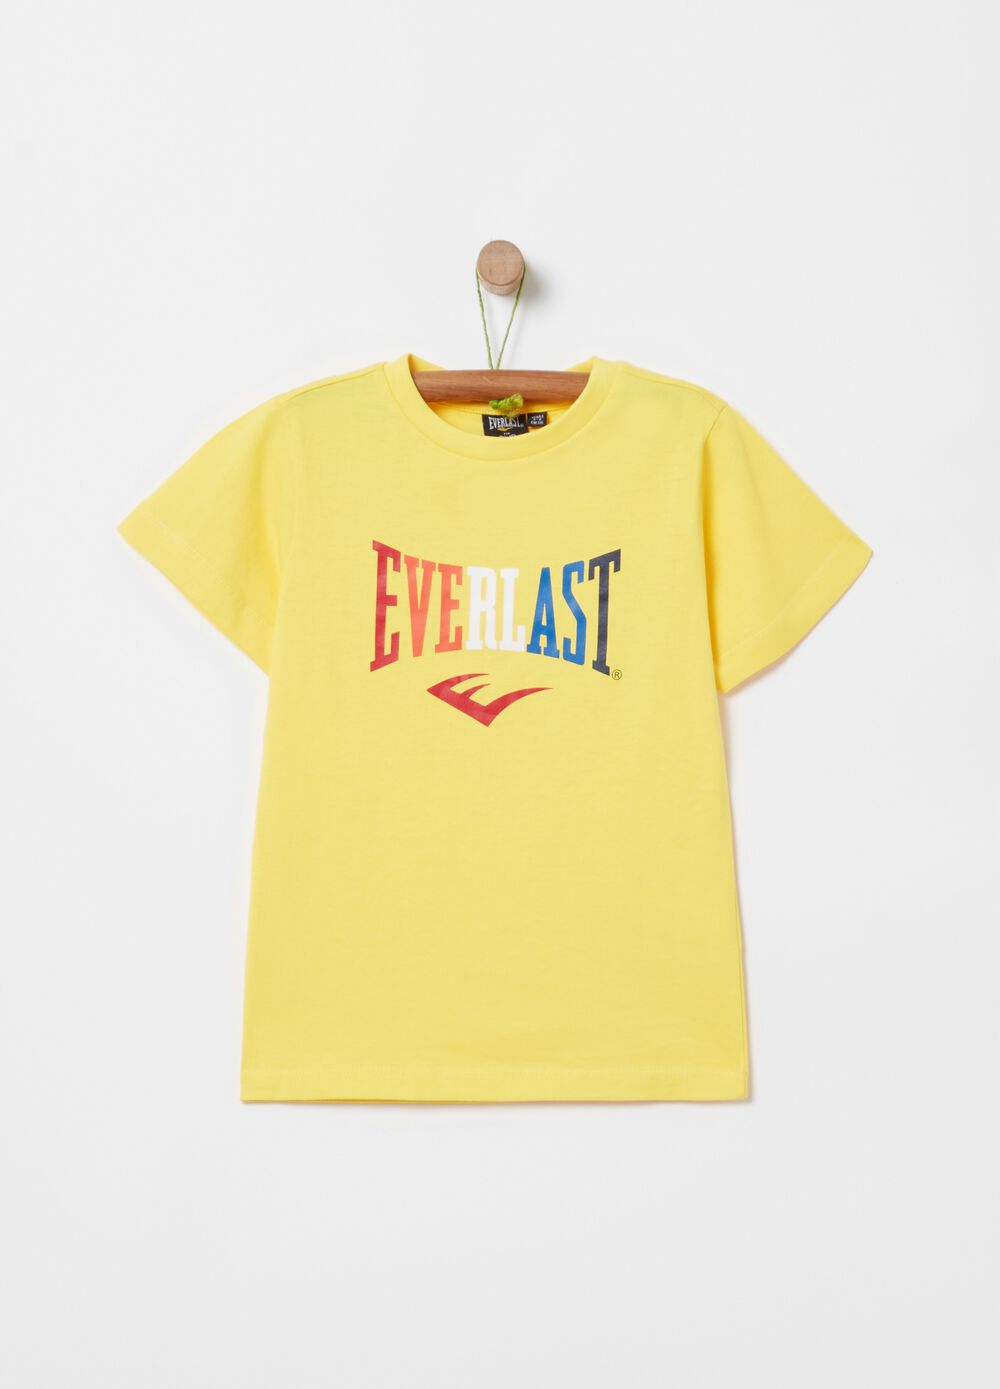 100% organic cotton Everlast T-shirt